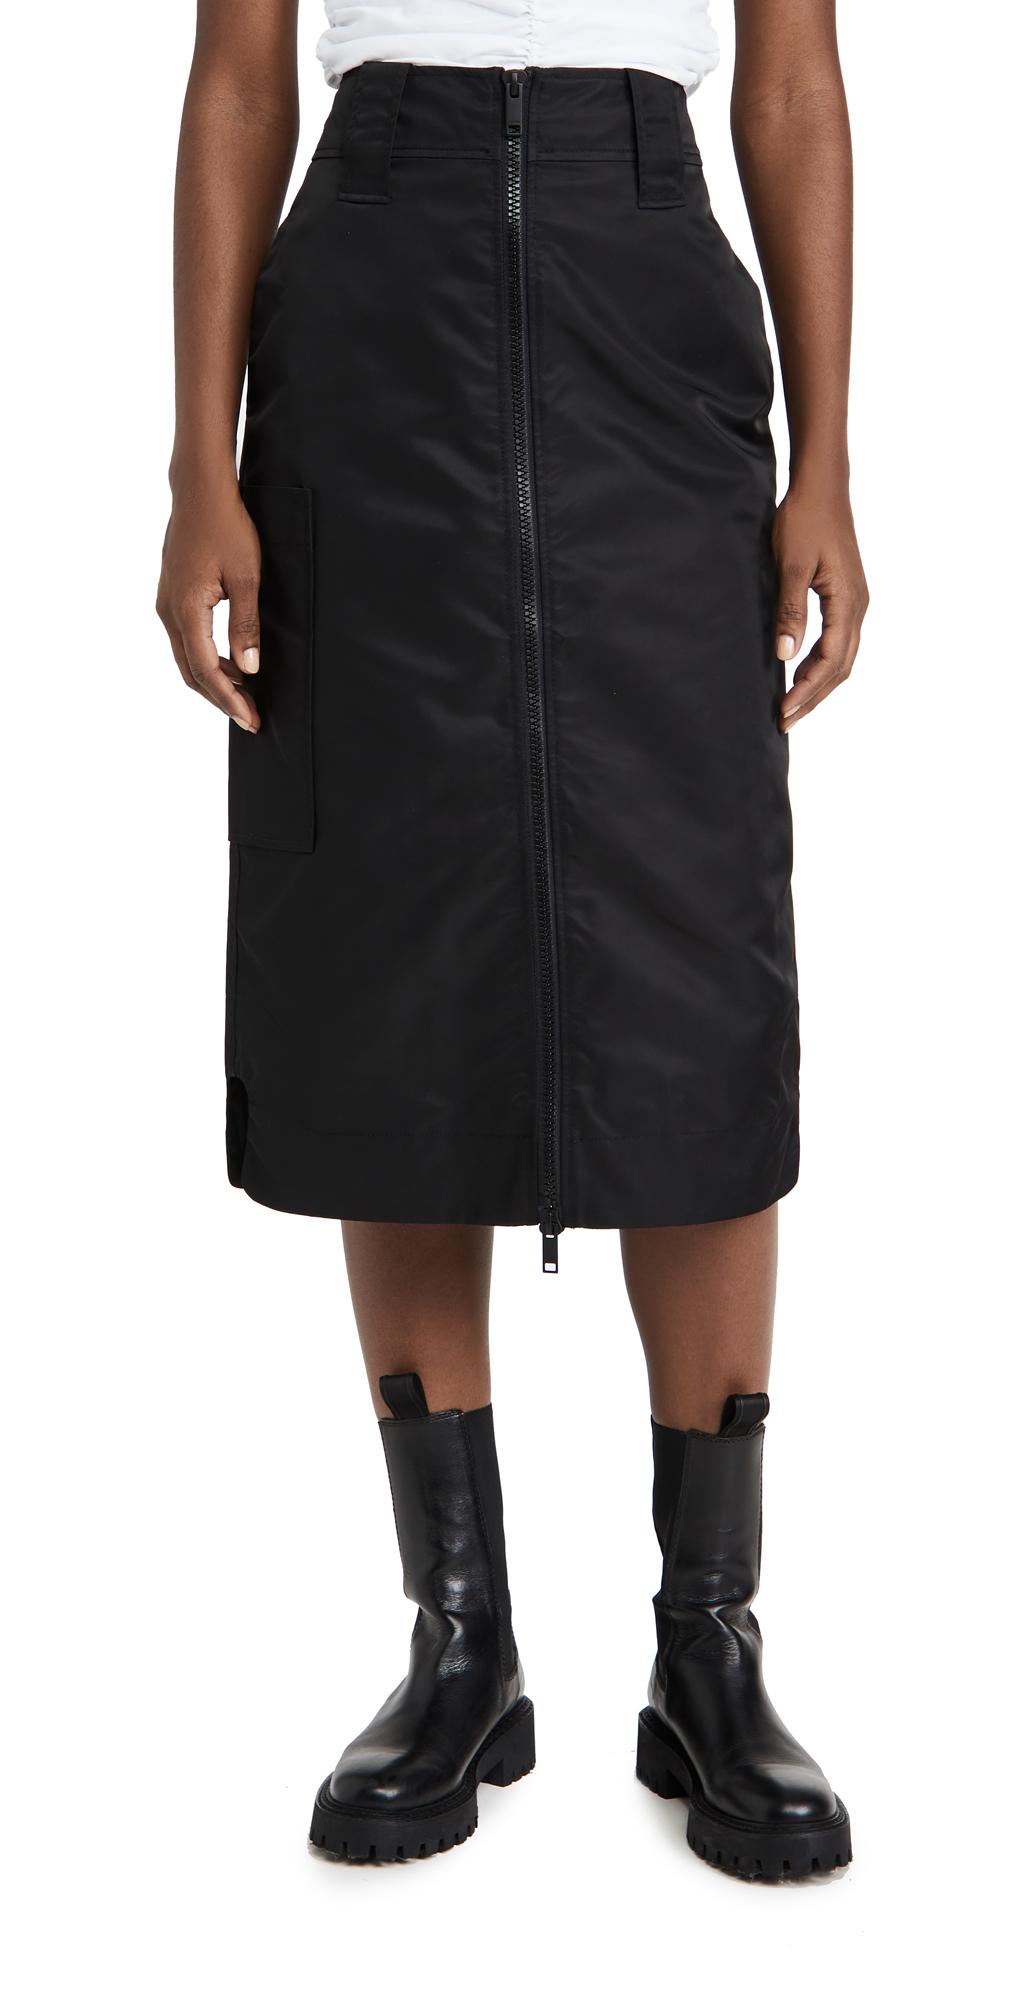 GANNI Outerwear Nylon Skirt